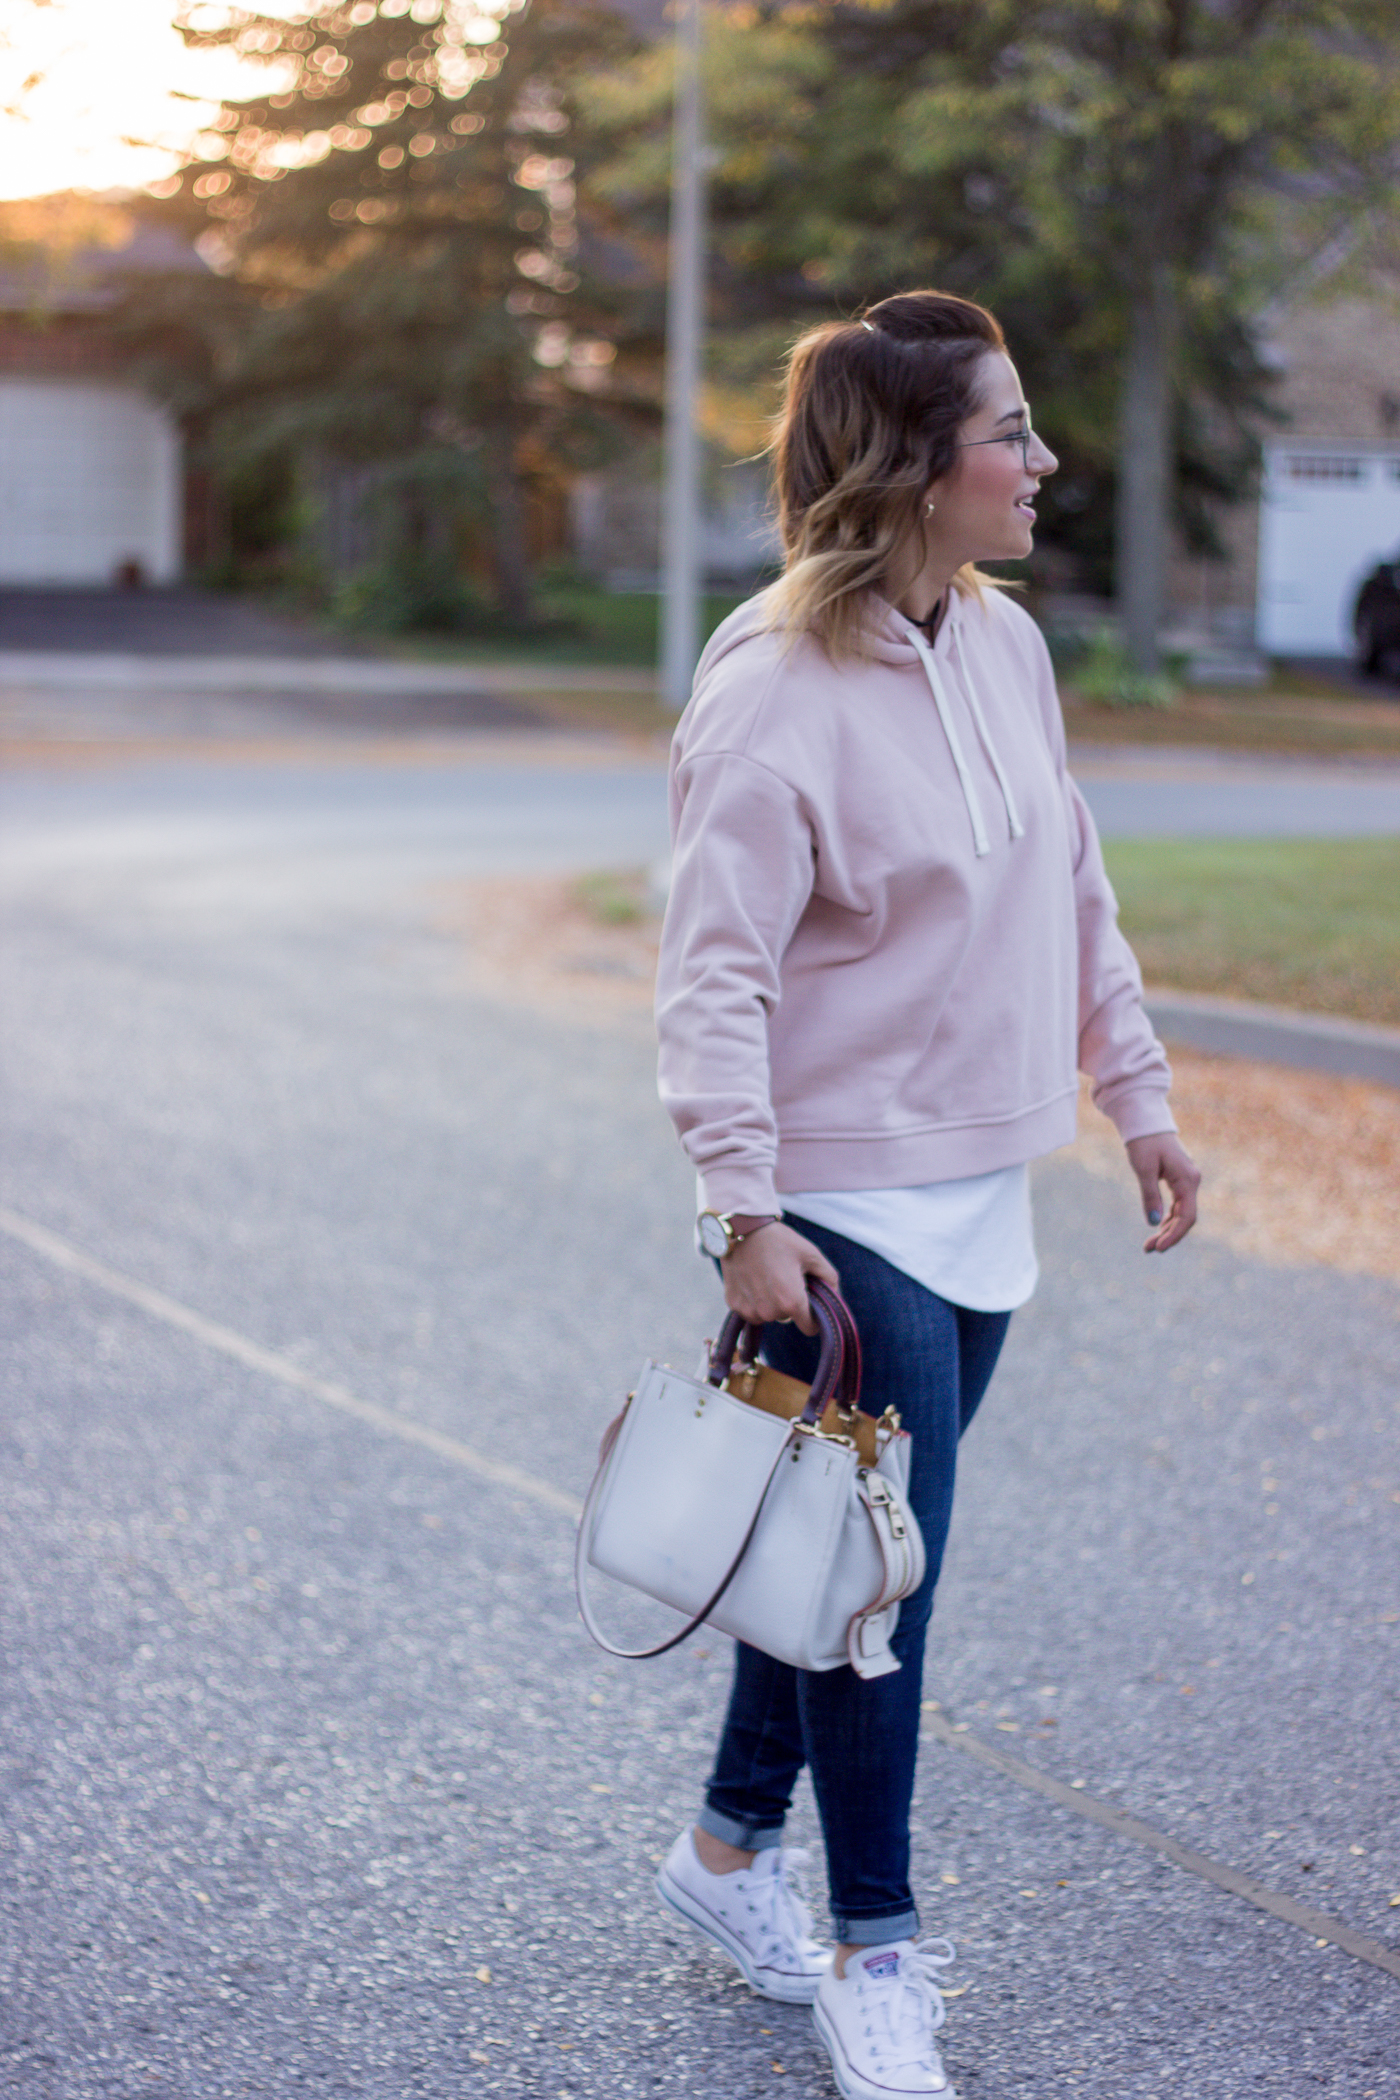 Canadian fashion blogger shares her favourite fall hoodies for adults